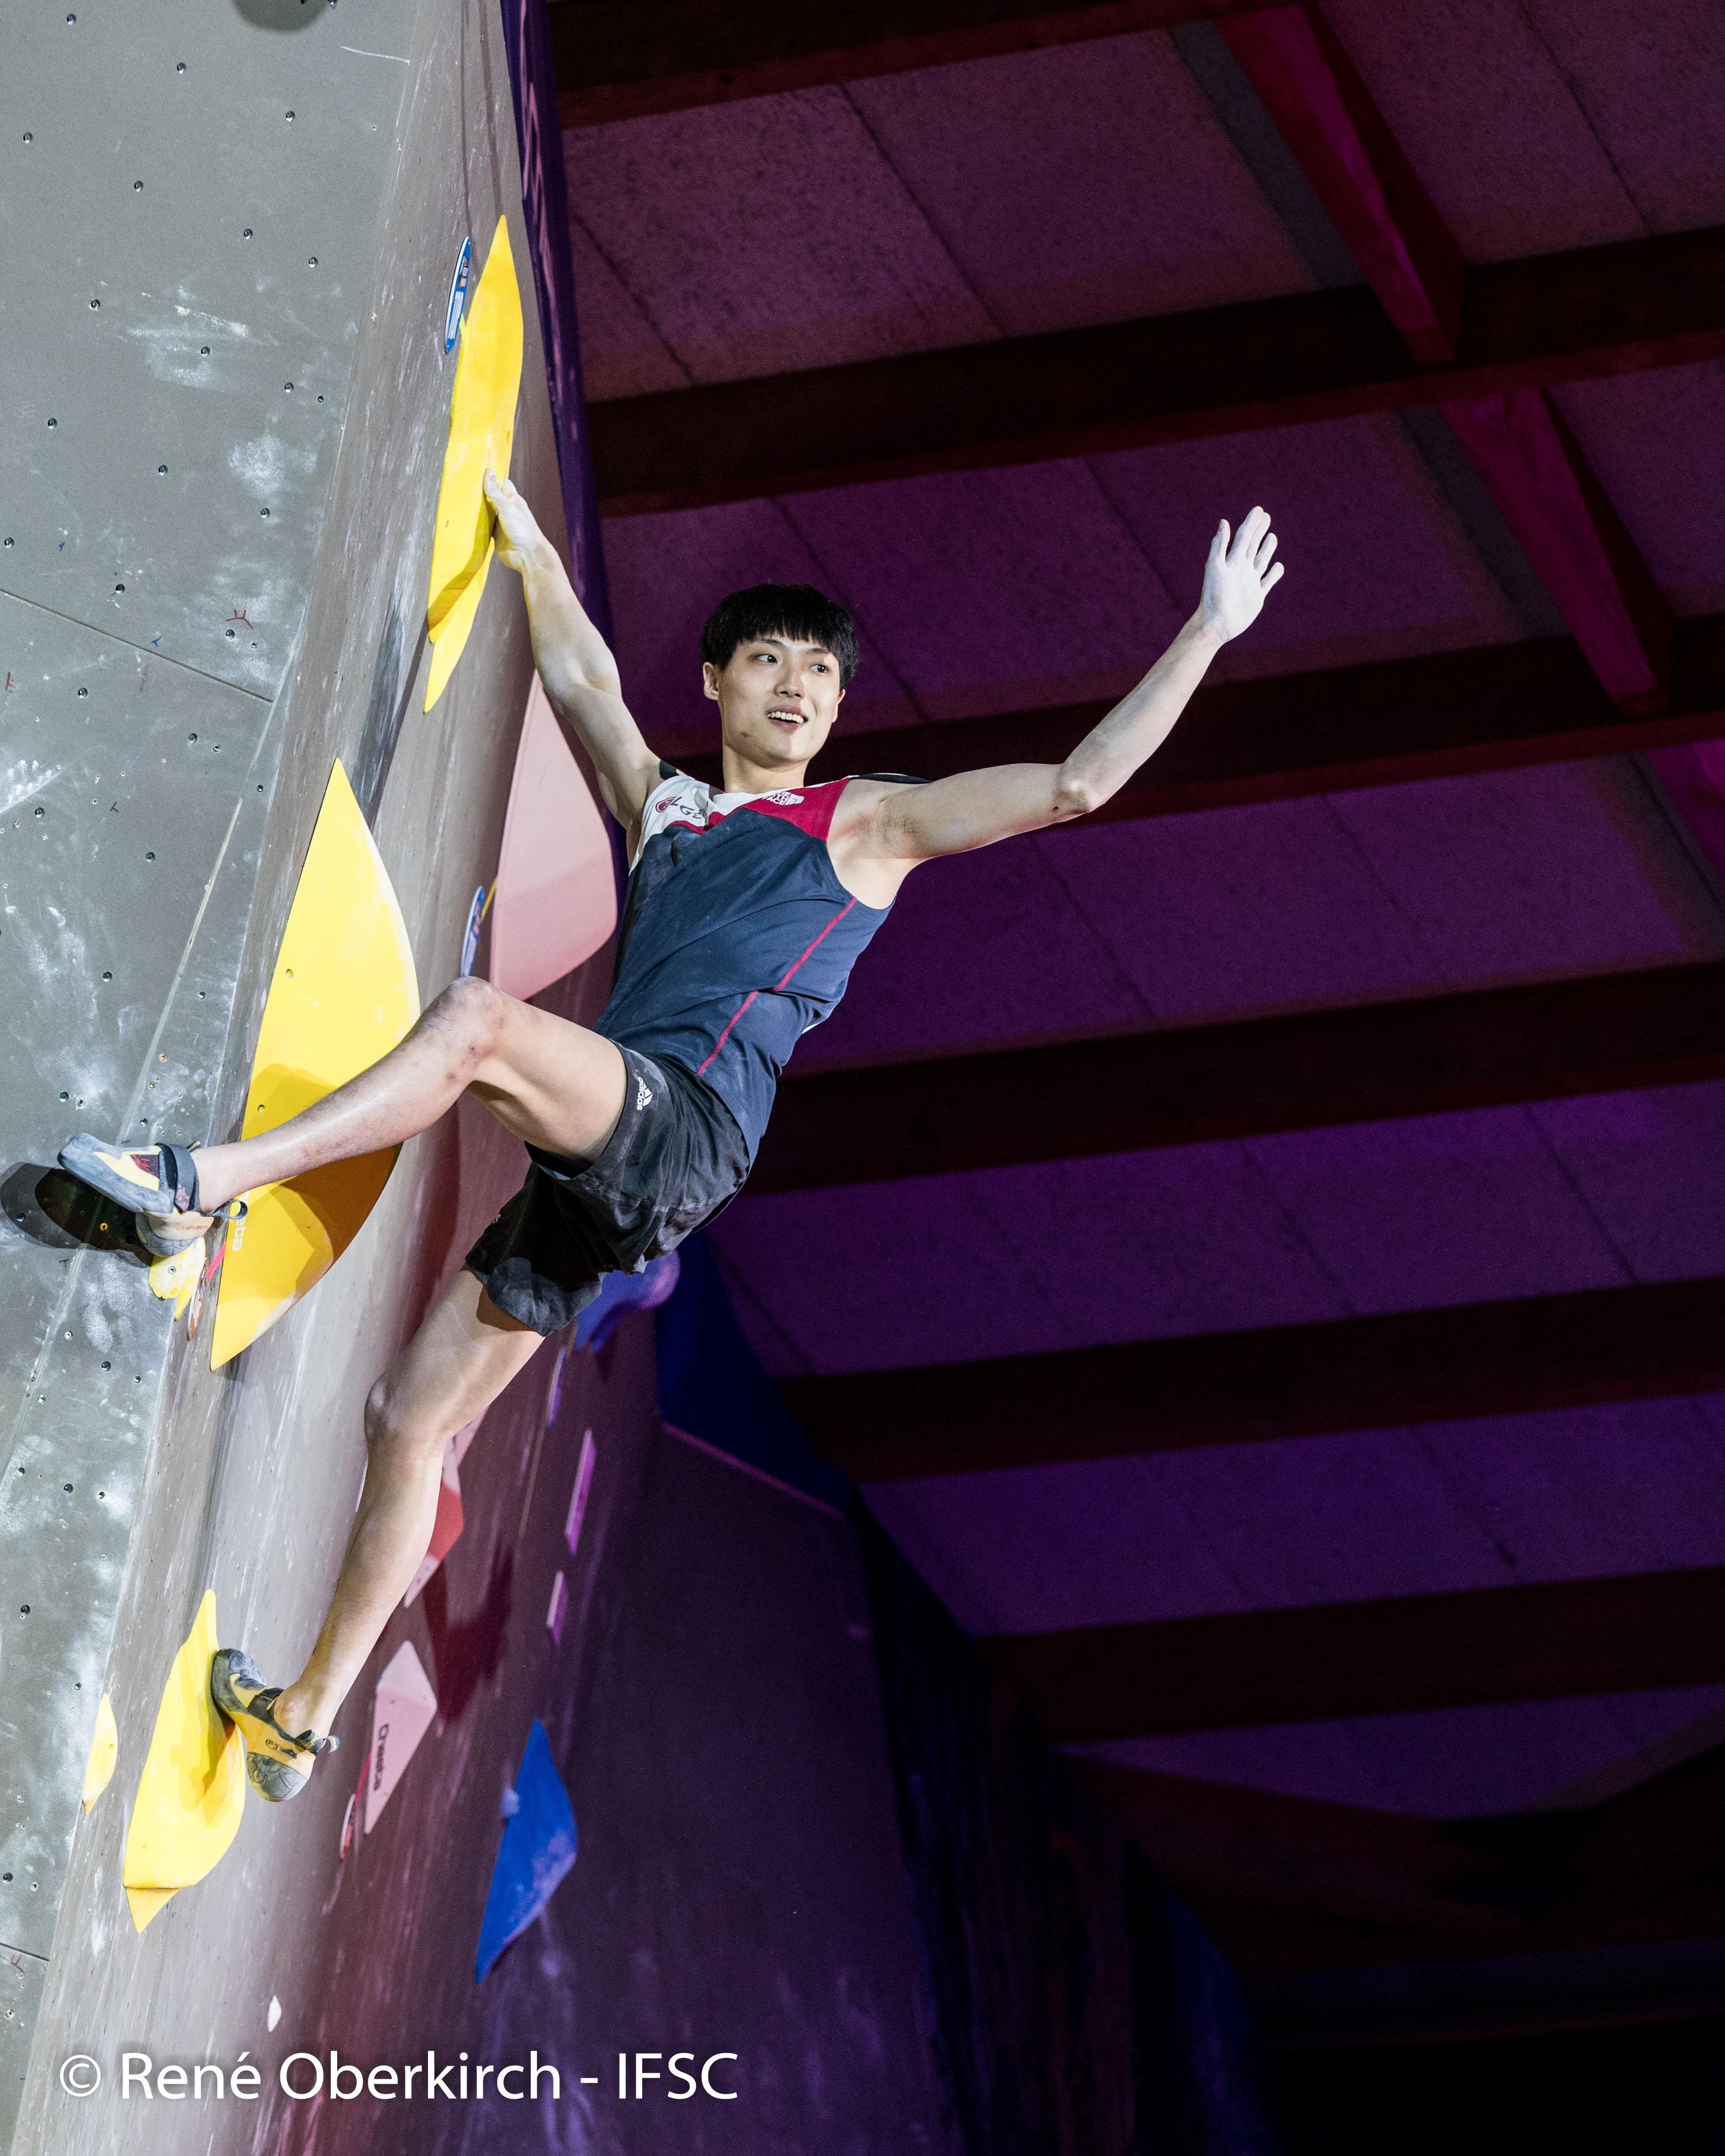 210309 IFSC Press Release Tokyo 2020 lineup now complete with South Korean climbers officially qualified 01